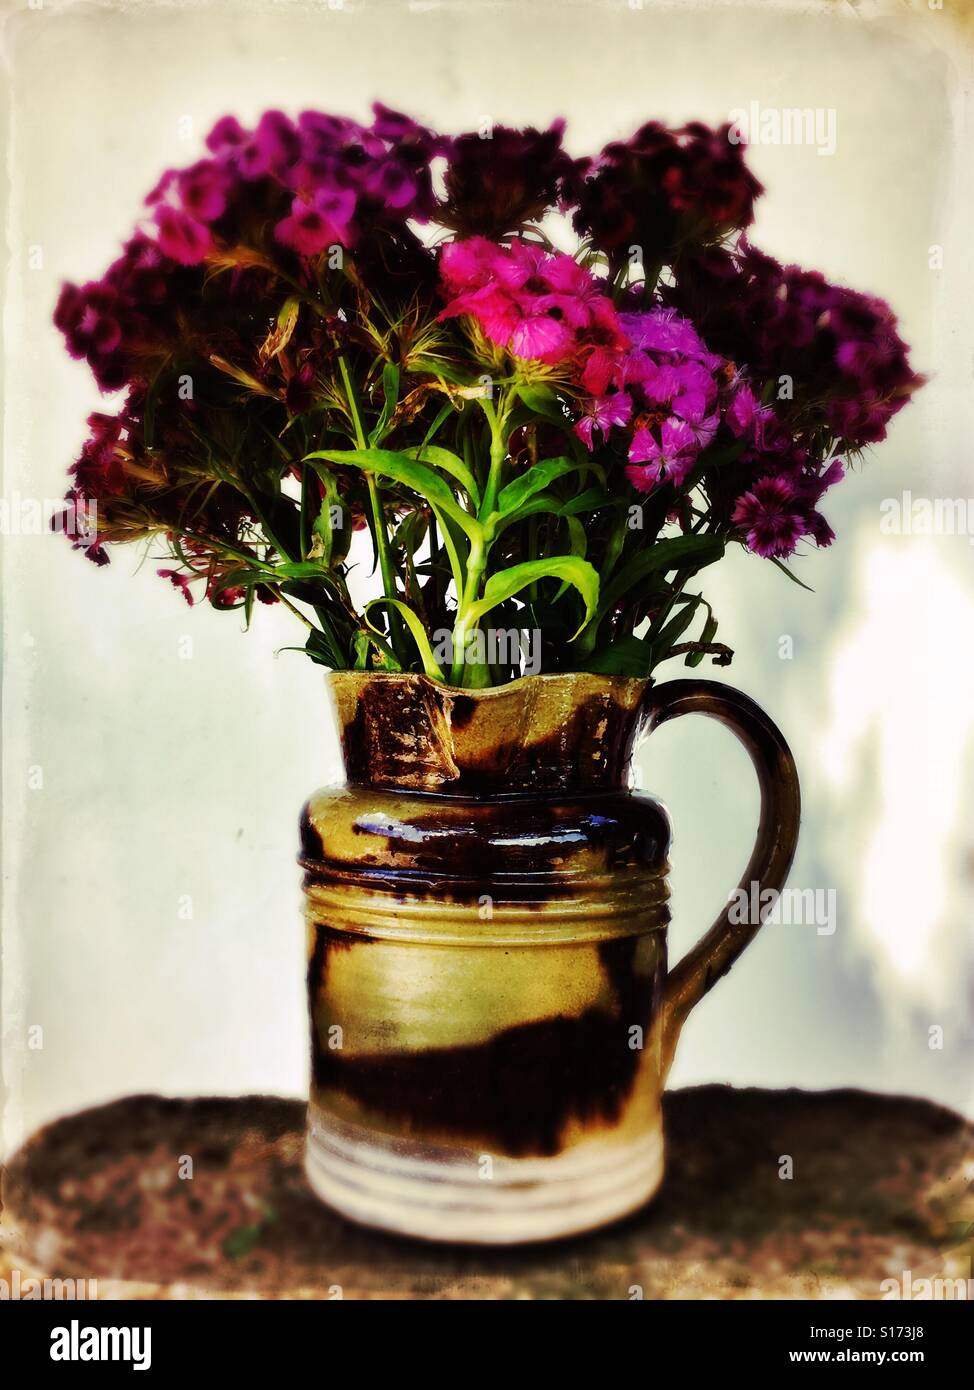 A jug of sweet williams - Stock Image